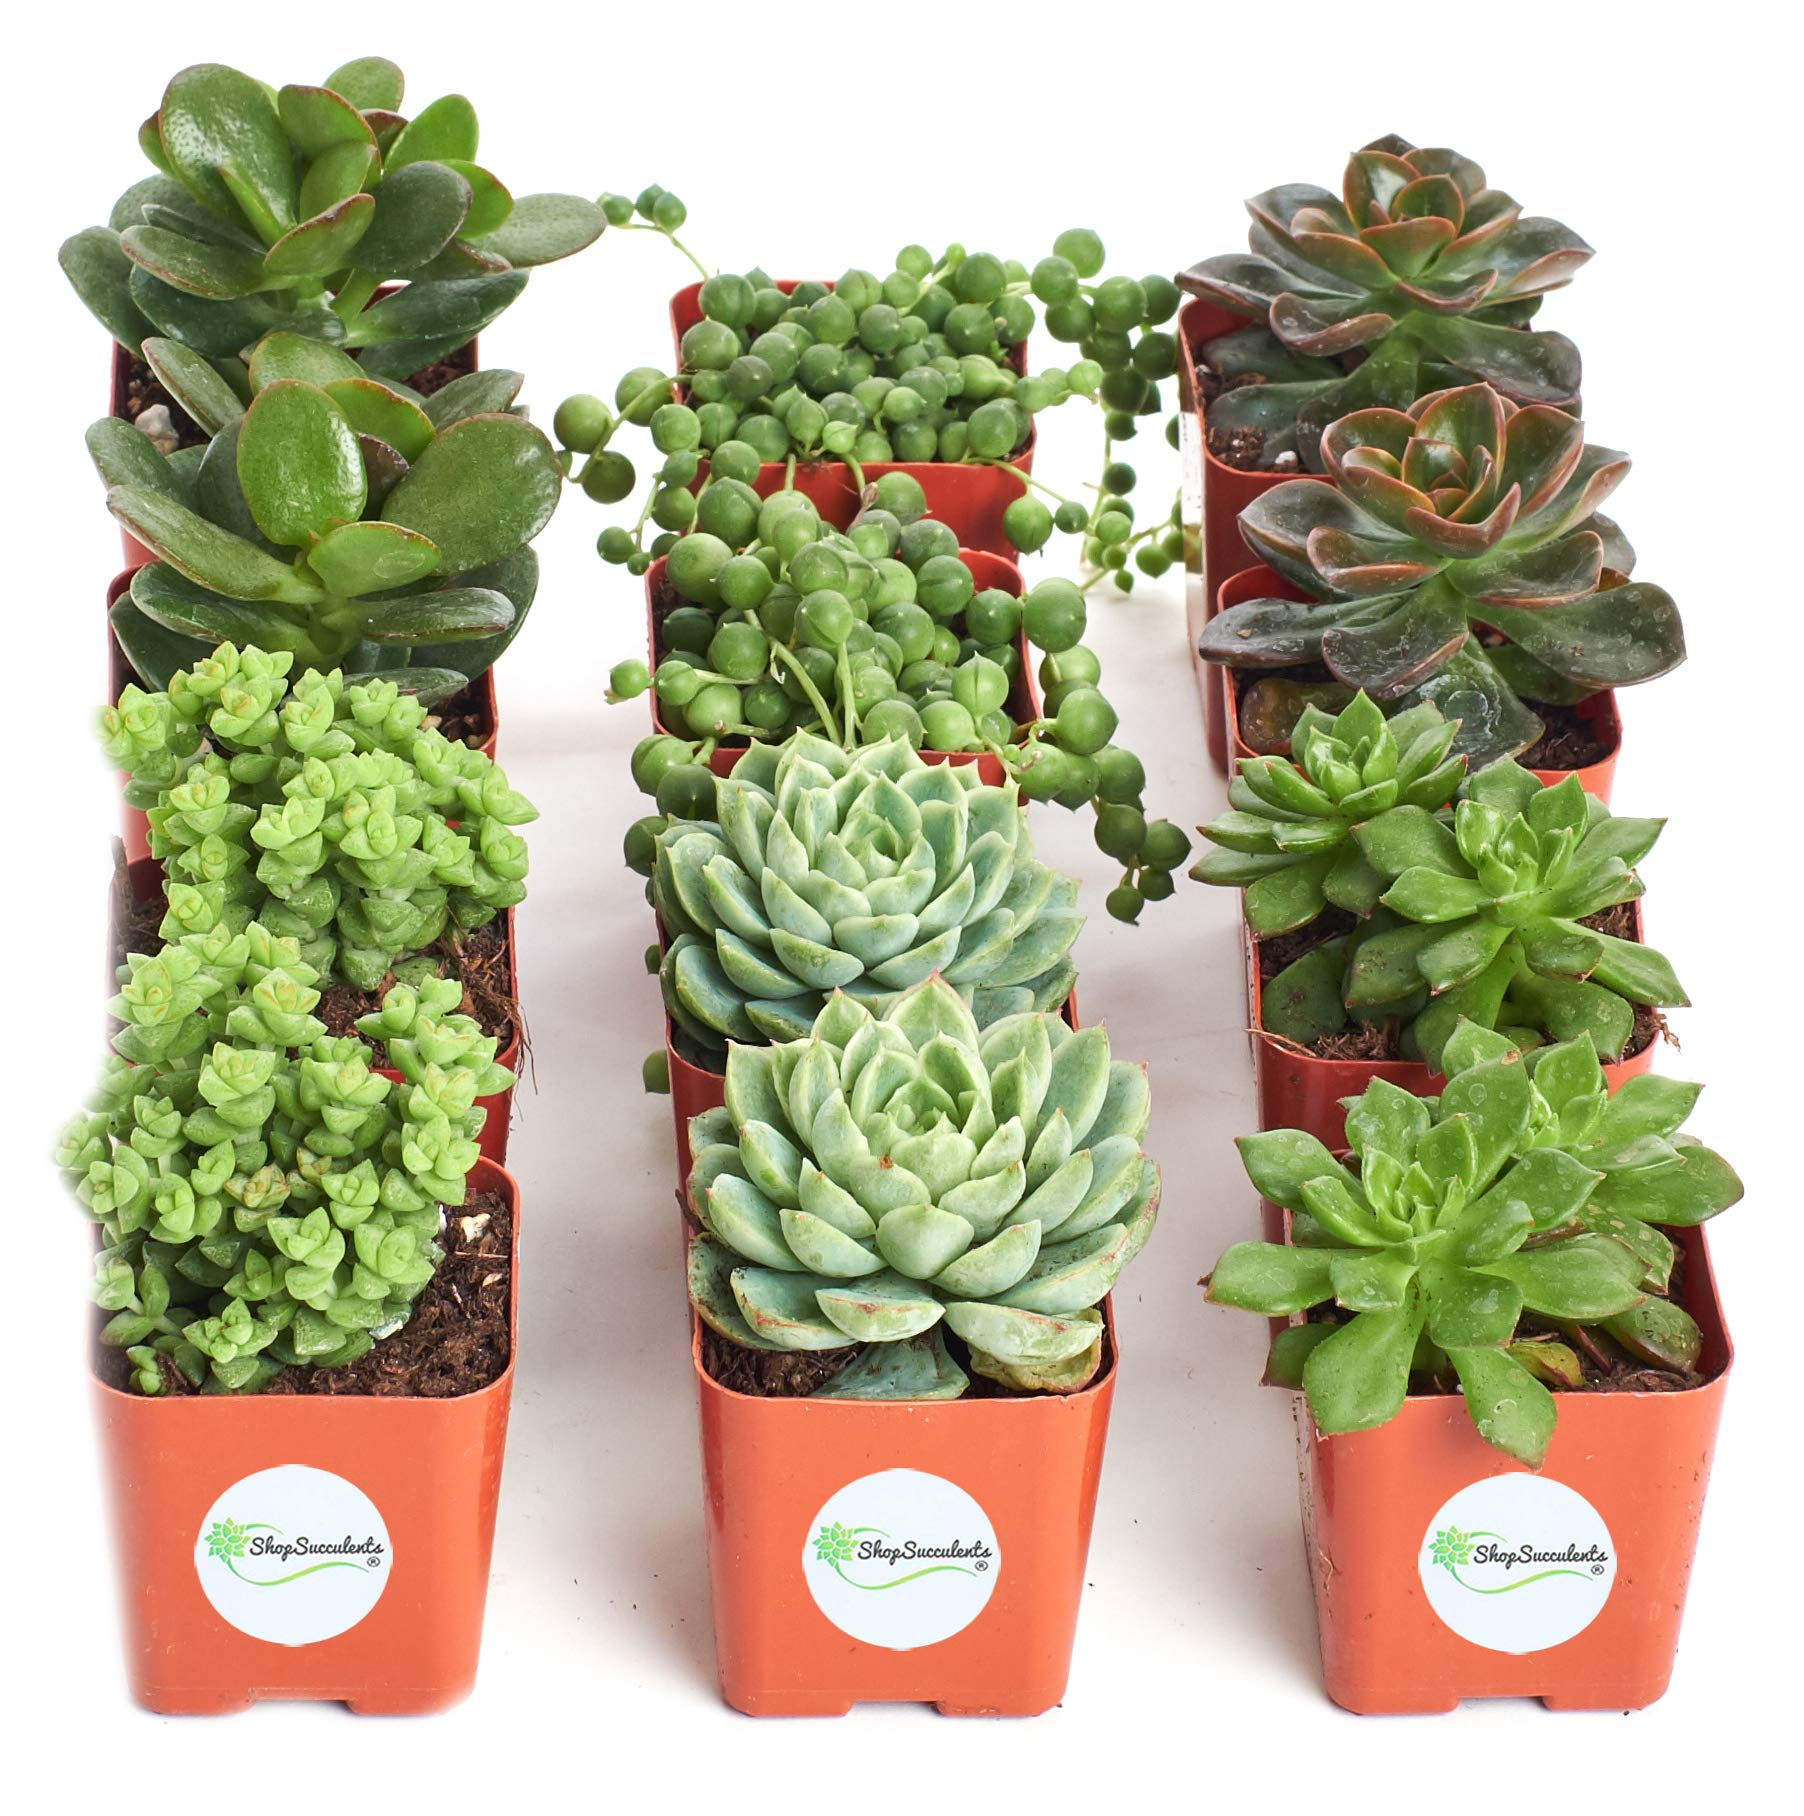 Shop Succulents | Green Live Plants, Hand Selected Variety Pack of Mini Succulents | | Collection of 12 in 2'' pots, Pack of 12